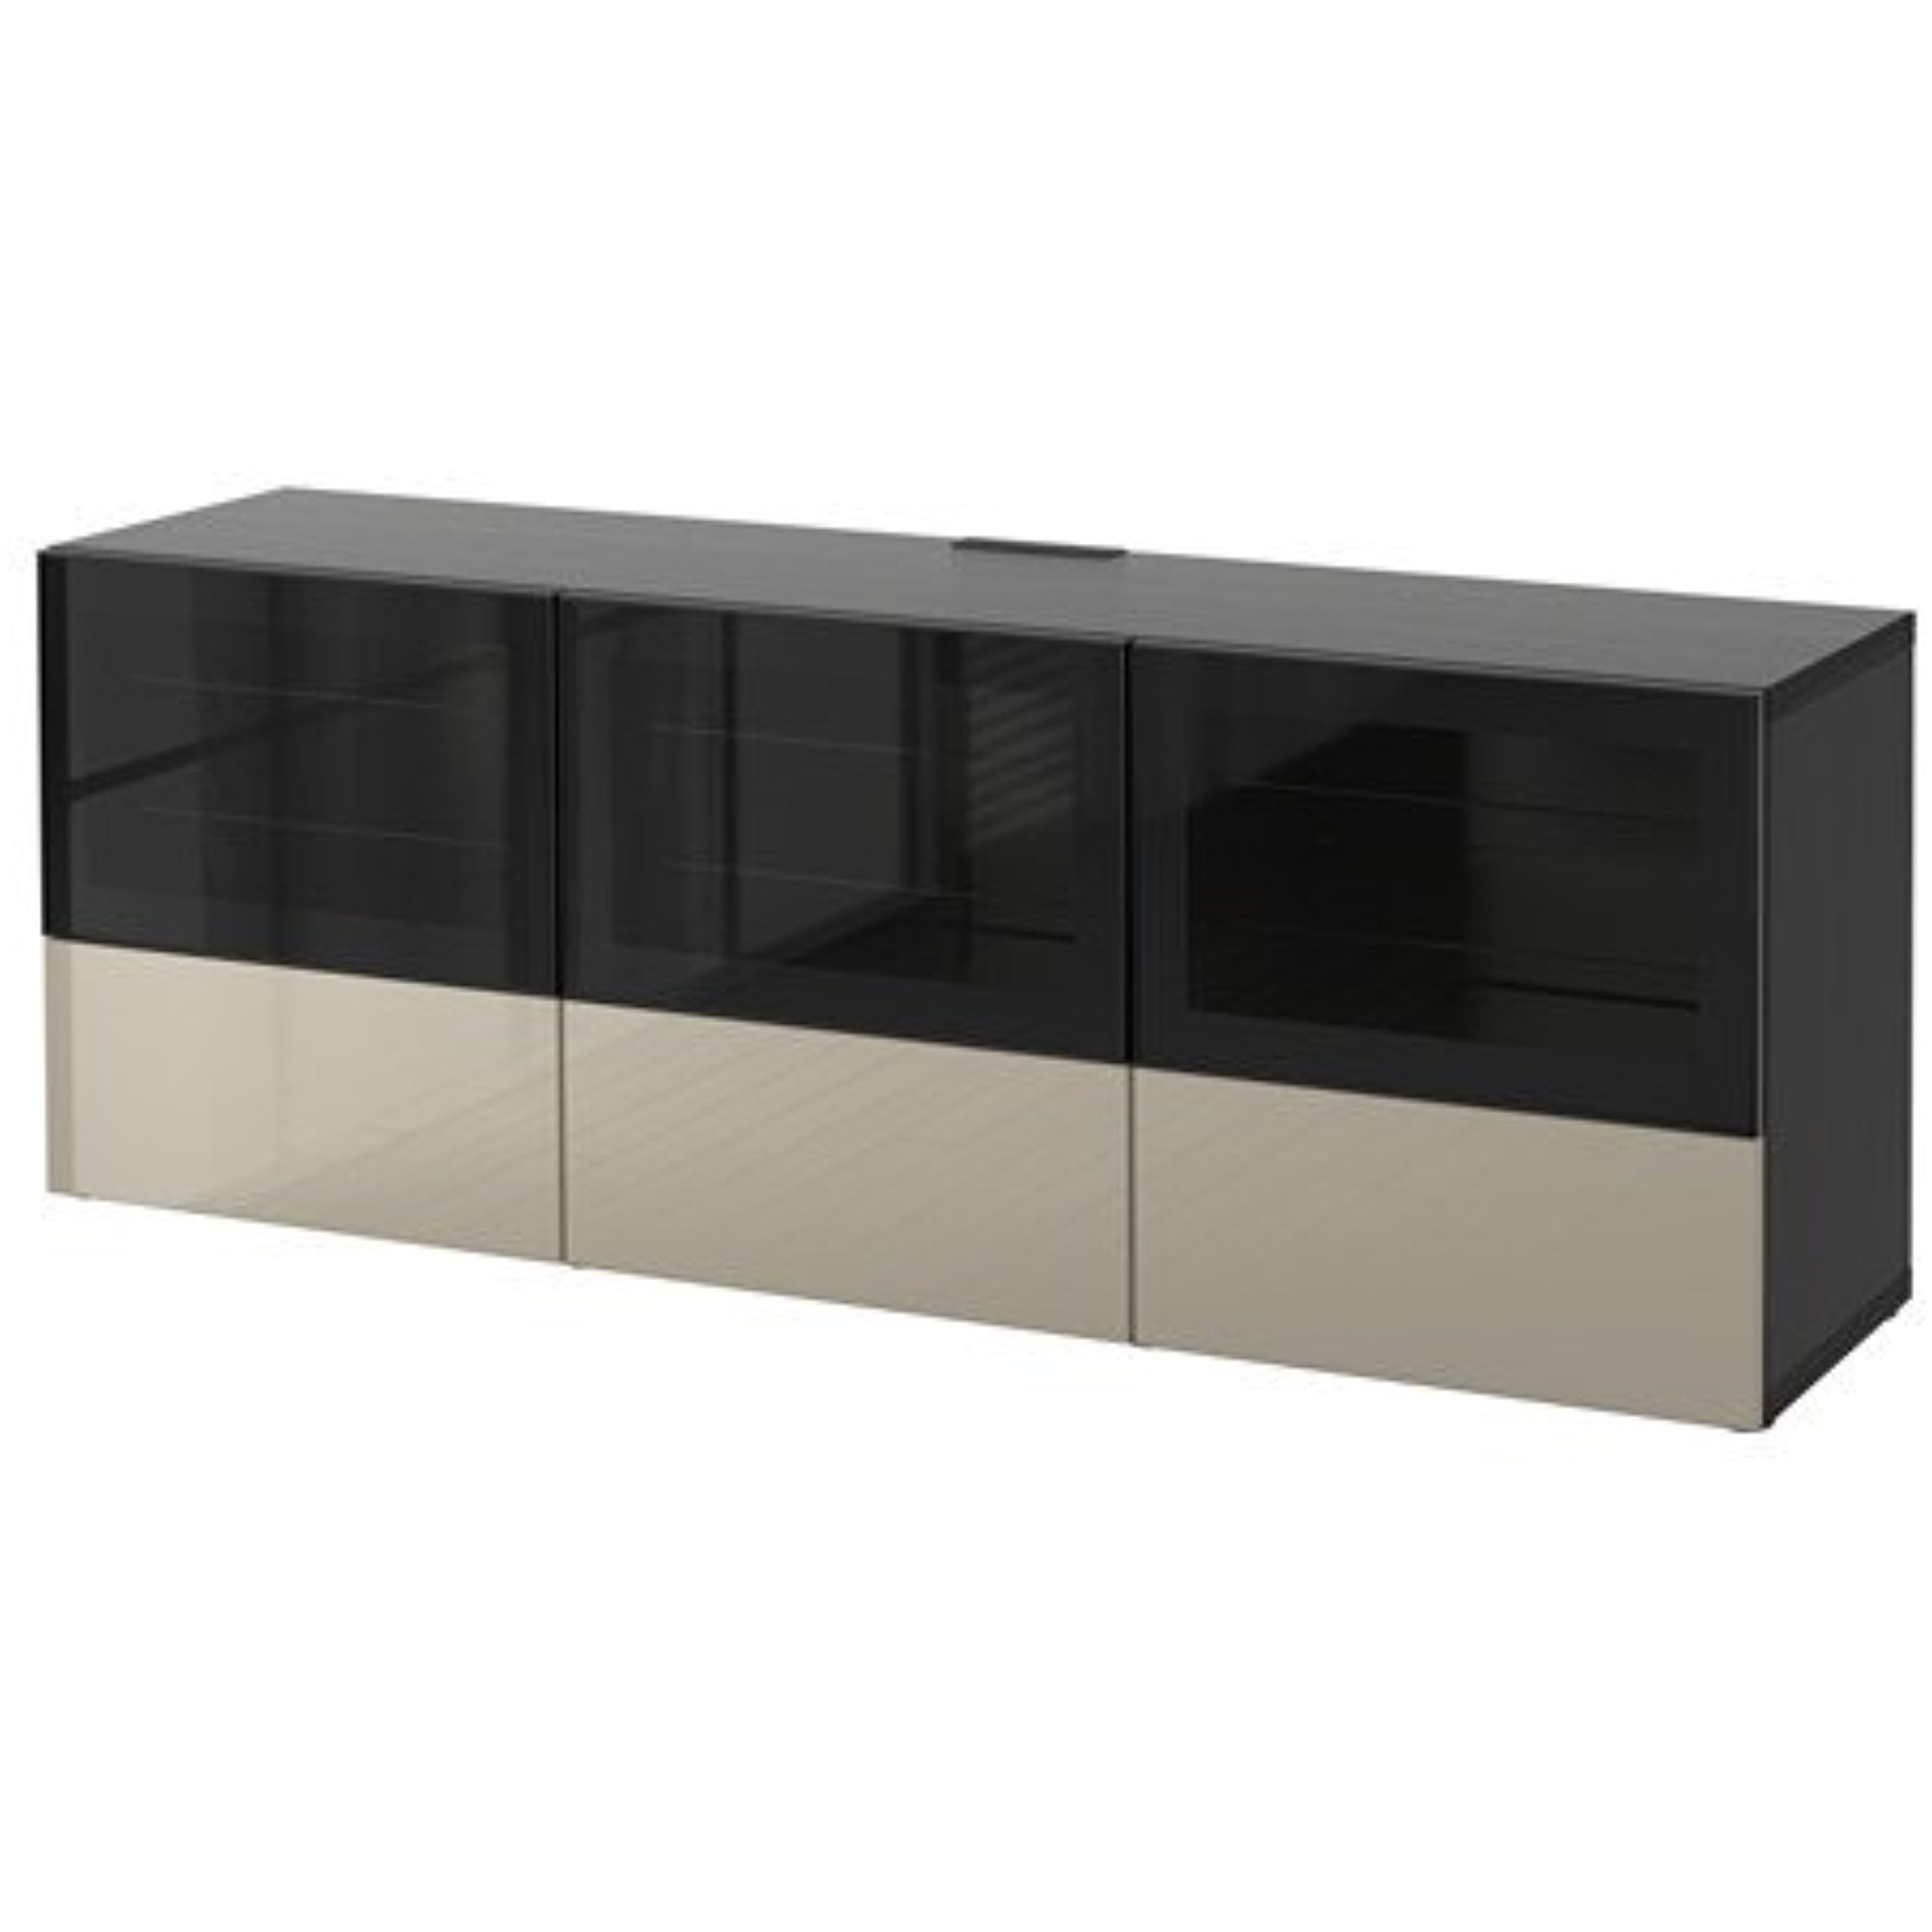 Ikea TV bench with doors and push-open drawers, black-brown, Selsviken high gloss/beige clear glass 8204.81411.66